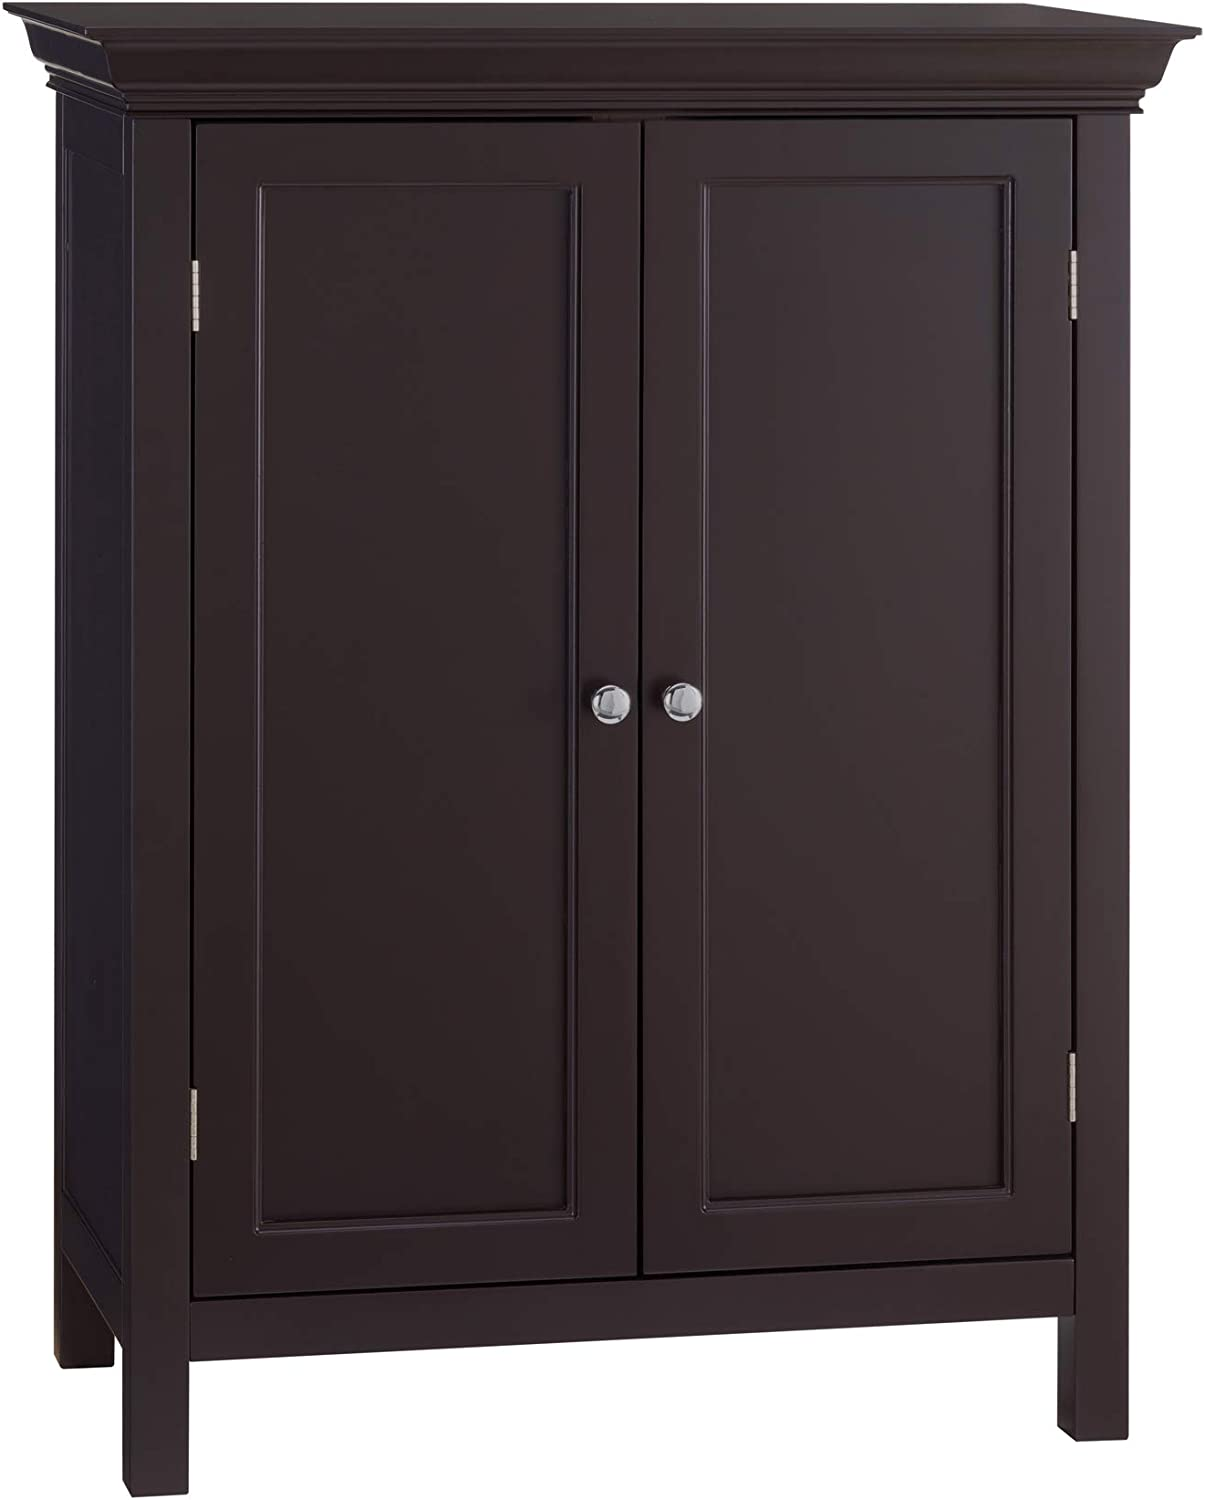 Elegant Home Fashion Stratford Freestanding Cabinet with 2 Doors-Espresso